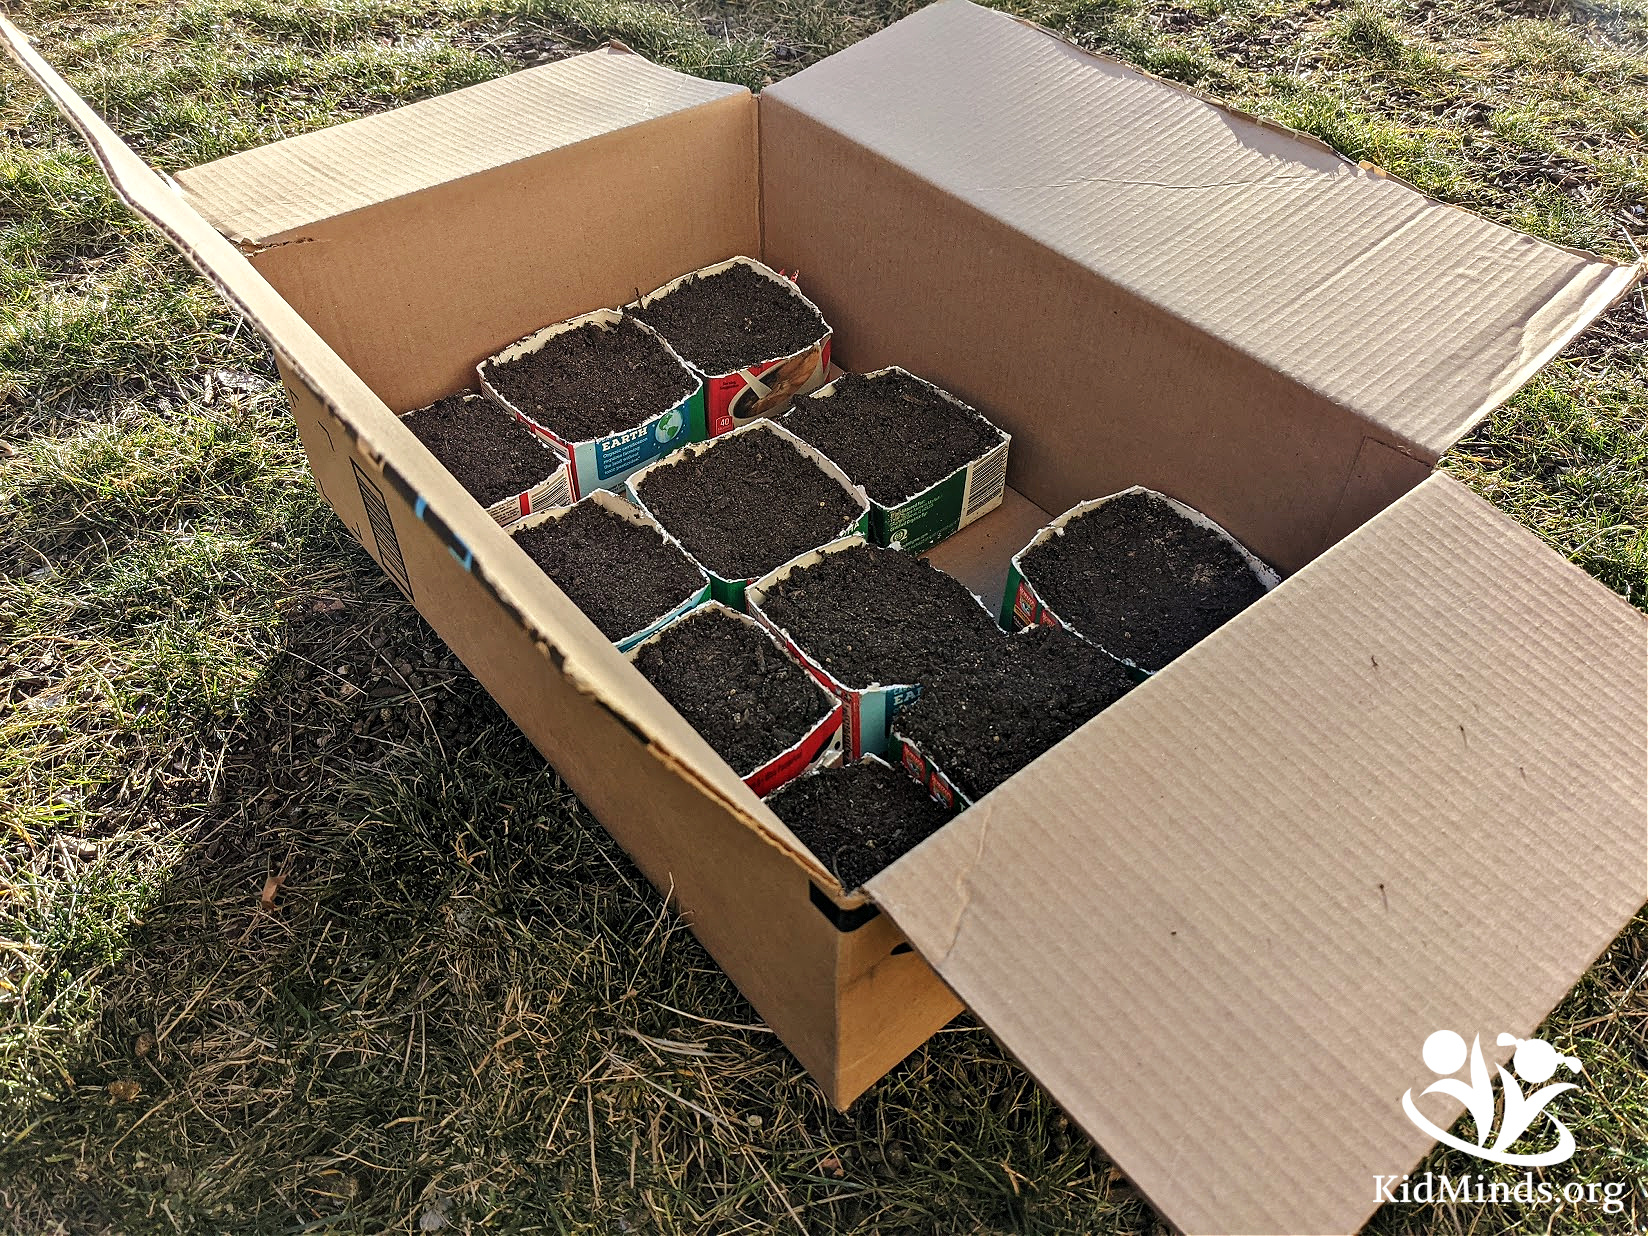 DIY mud bricks are a fun way to get kids outside and playing while practicing engineering skills, problem-solving, and creative thinking. #STEM #kidsactivities #handsonlearning #kidminds #laughingkidslearn #outdoorplay